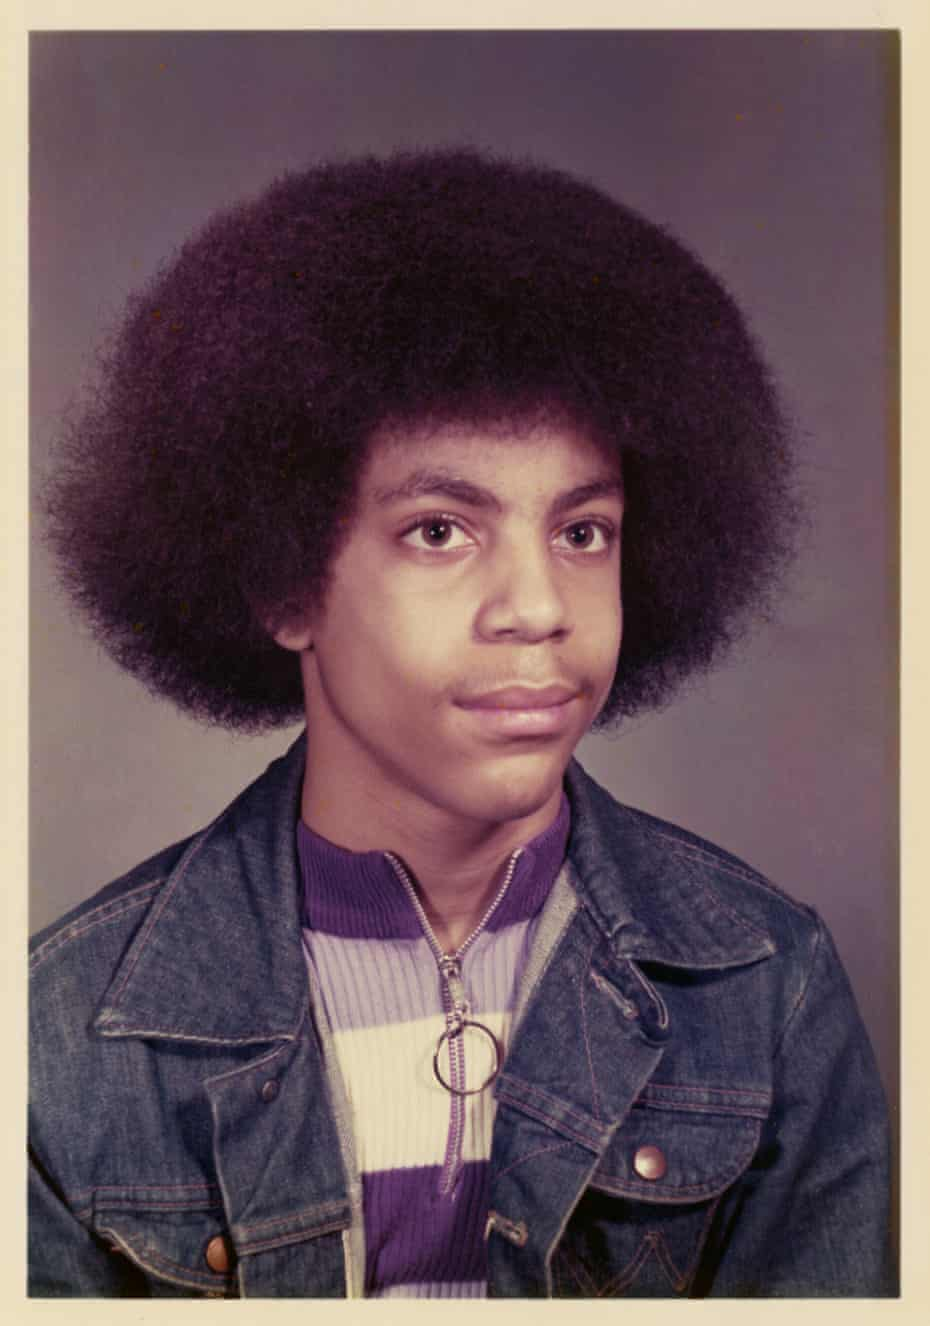 Prince in the ninth grade at Bryant Junior High, Minneapolis, 1973